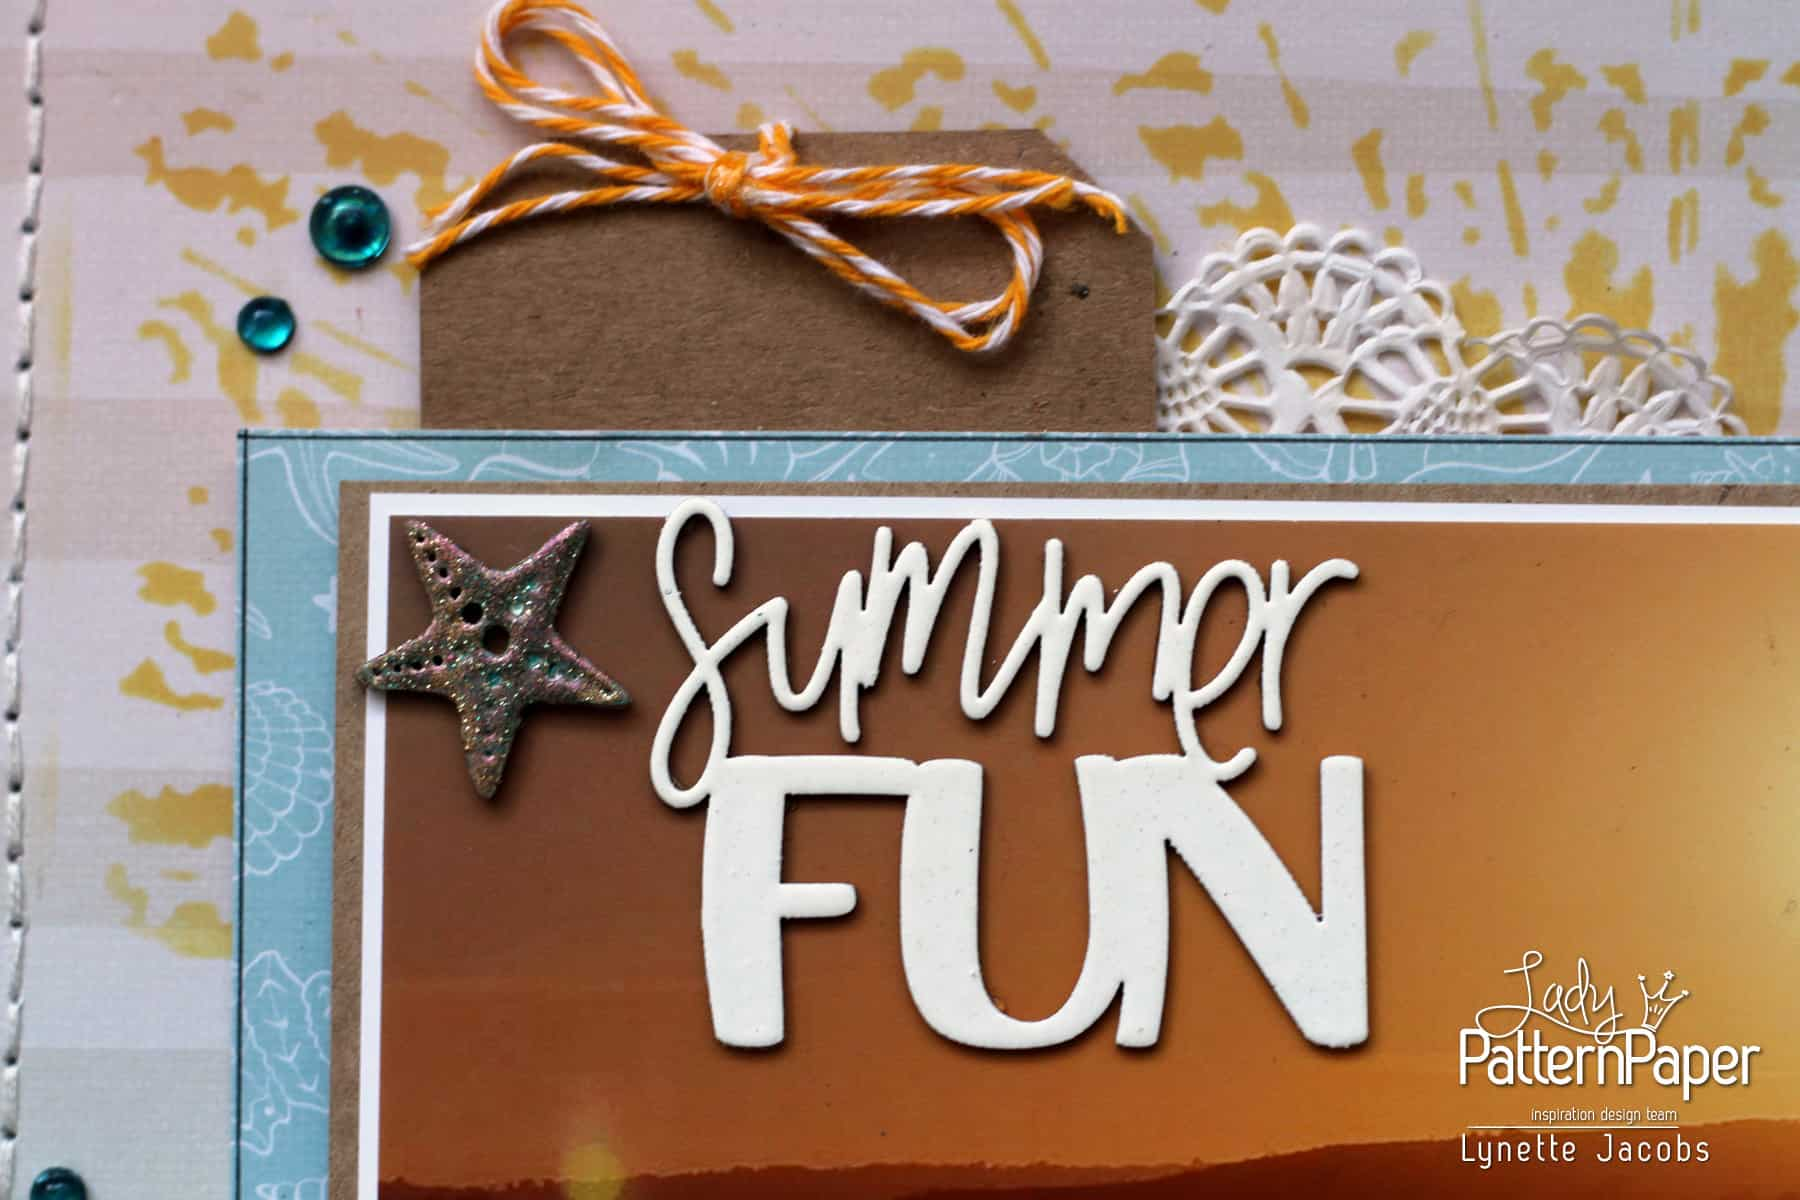 Lynette's Summer FUN Layout - Chipboard Title